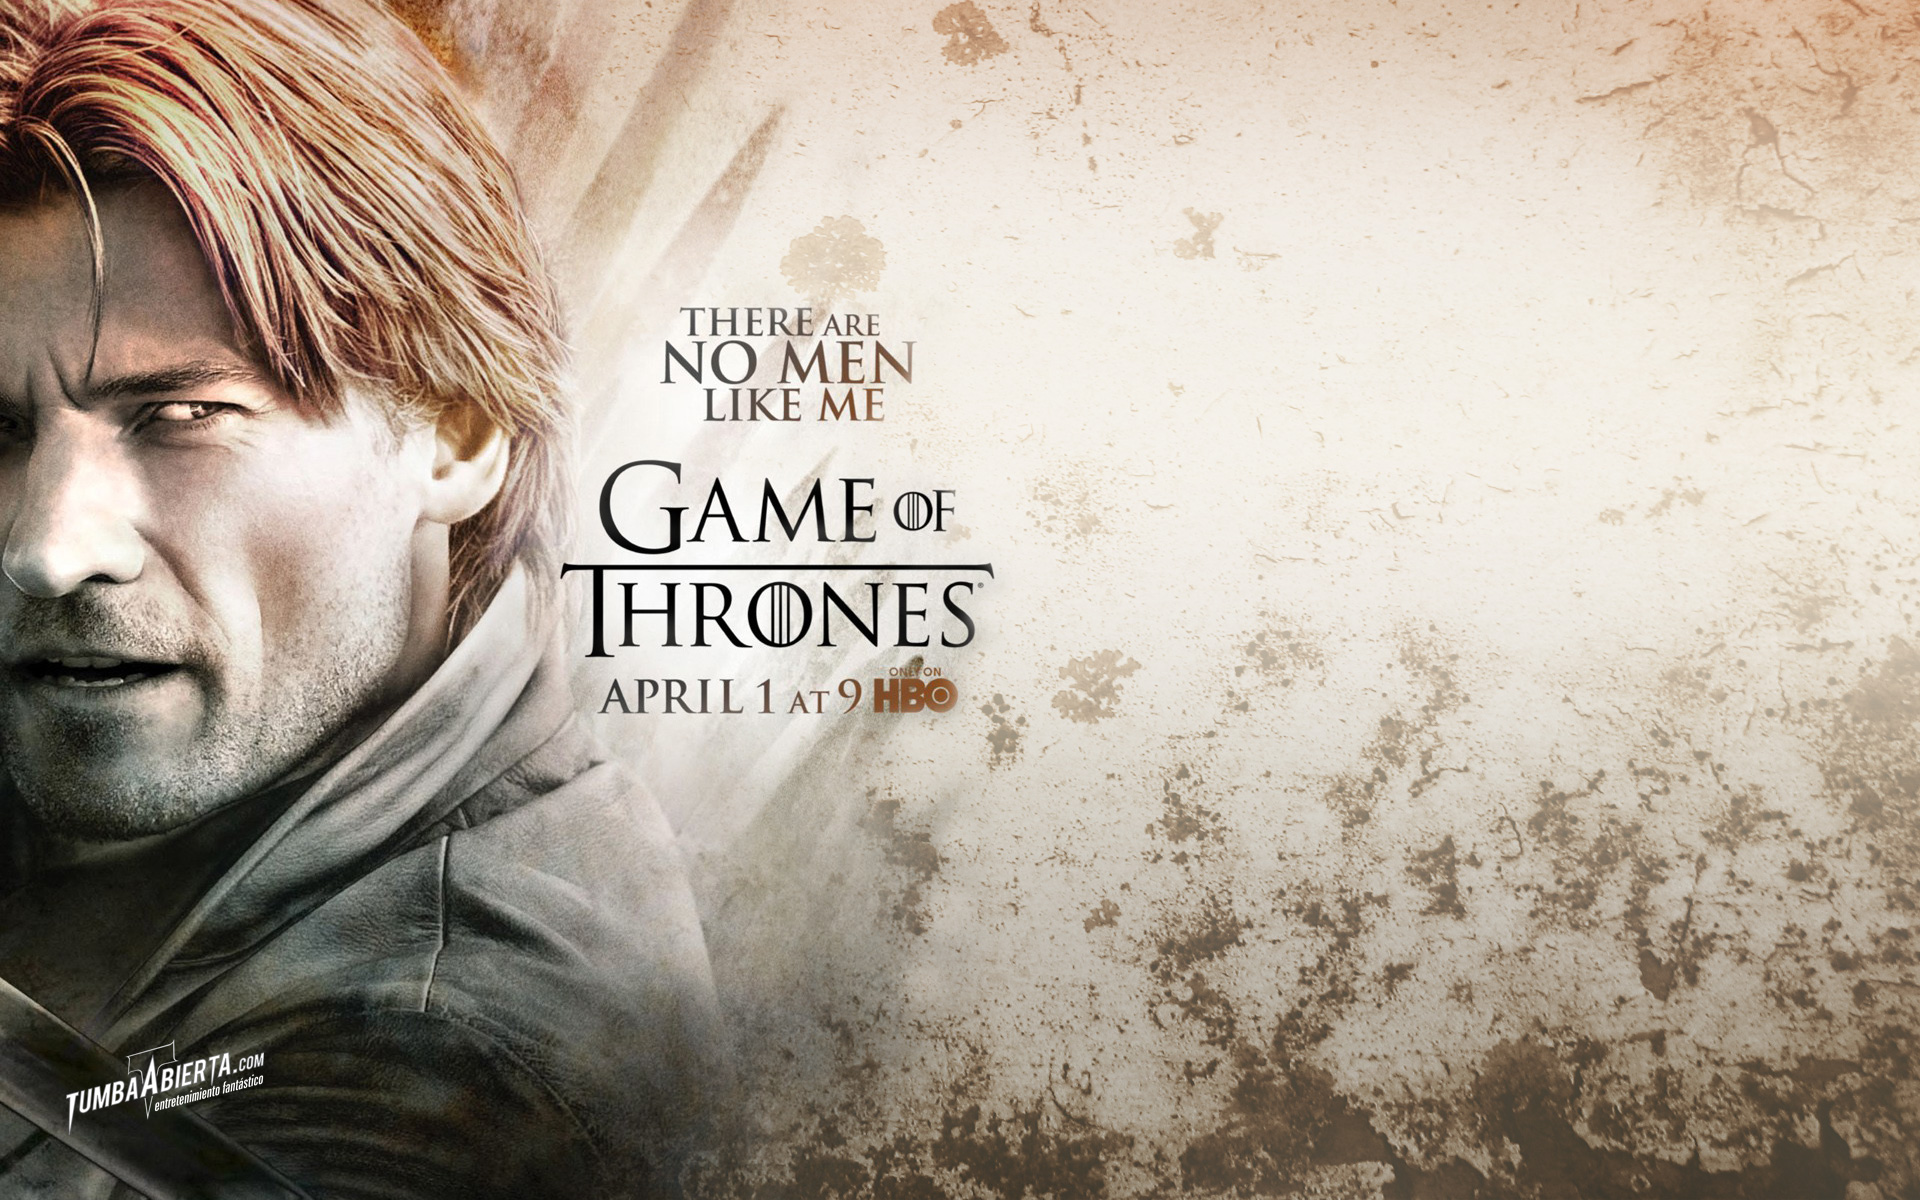 Wallpapers Juego de Tronos Game of Thrones